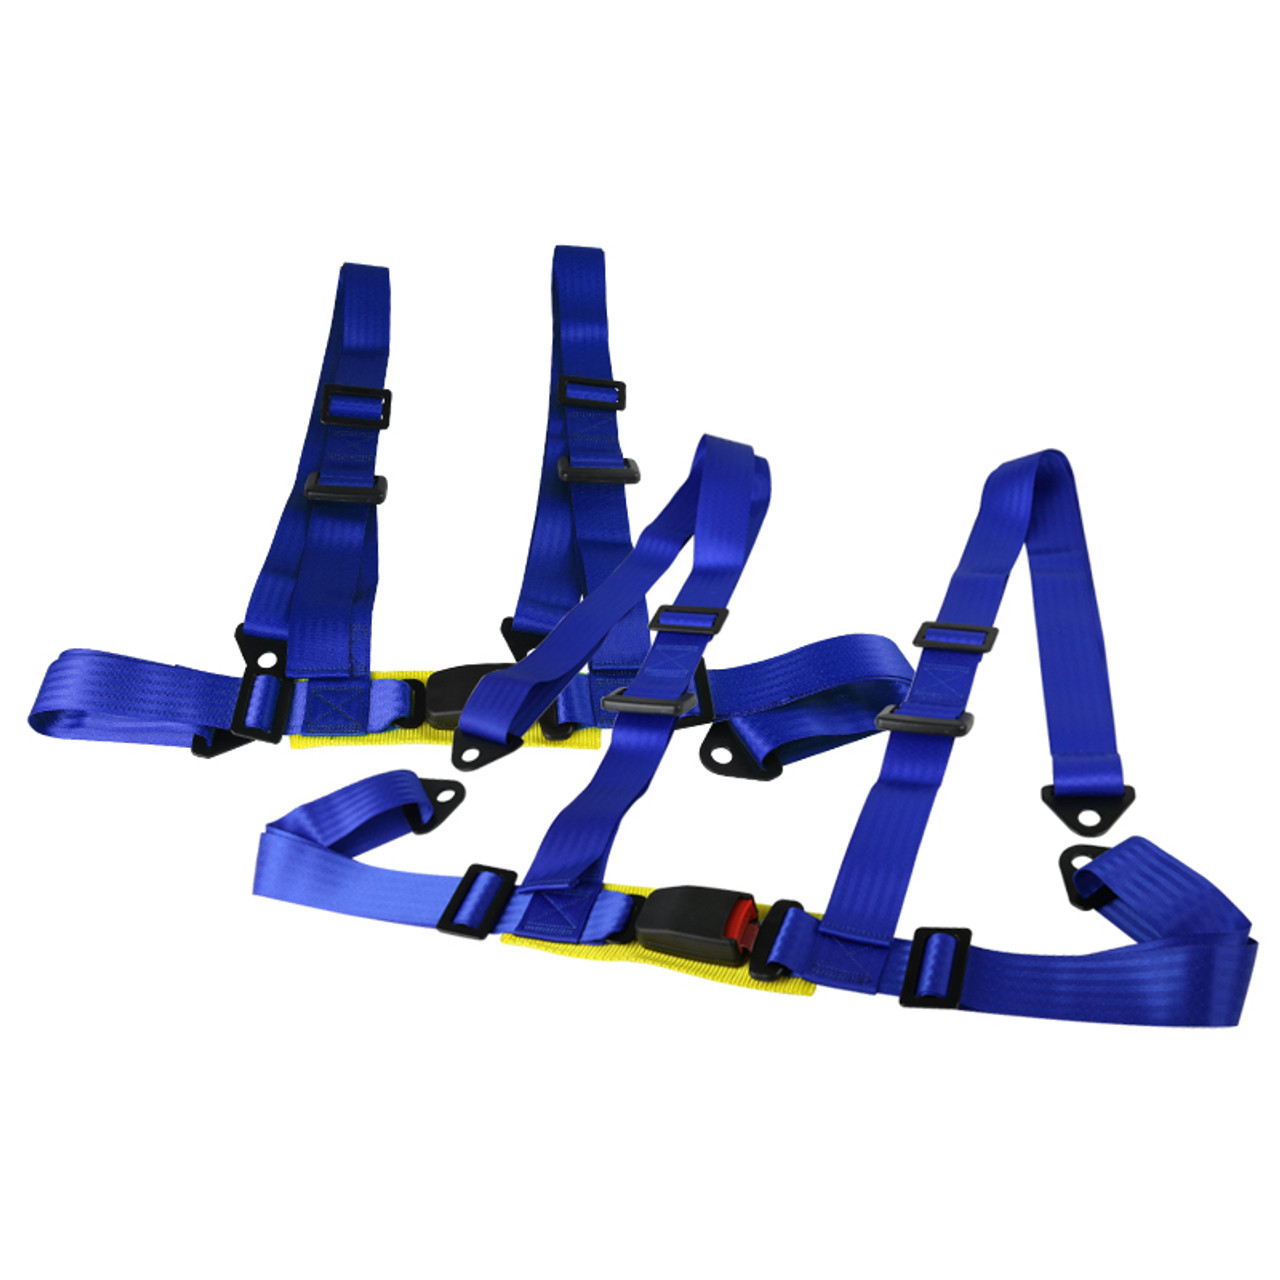 Pack of 1 RASTP 4 Point Racing Safety Harness Set with 2 Straps for Racing Seat with SFI Certified,Blue